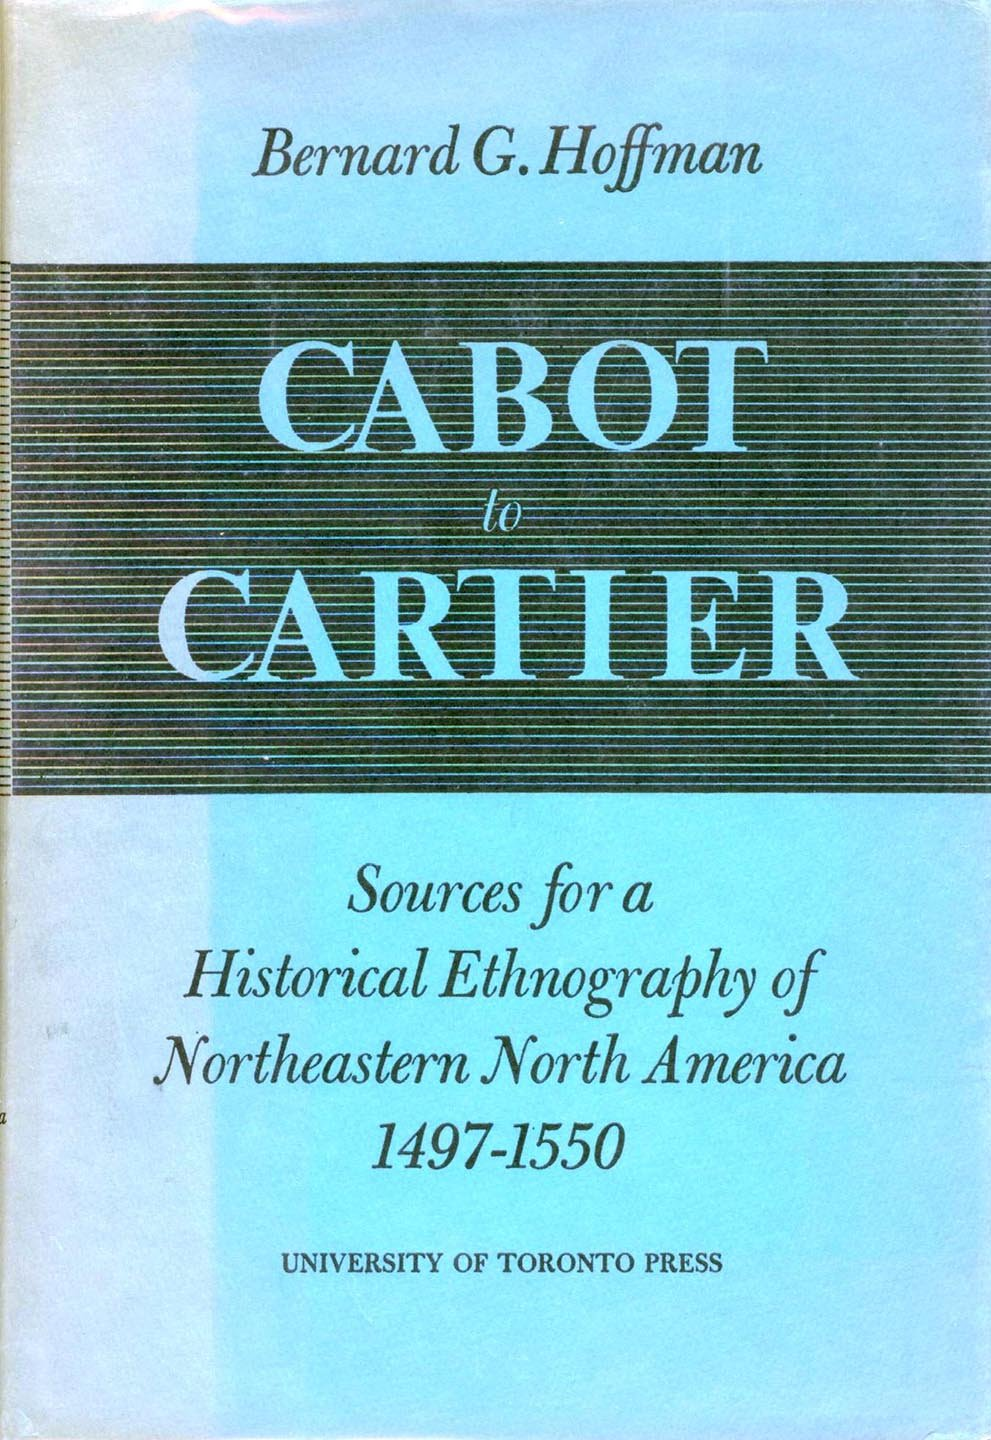 Cabot to Cartier: Sources for a Historical Ethnography of Northeastern North America 1497-1550